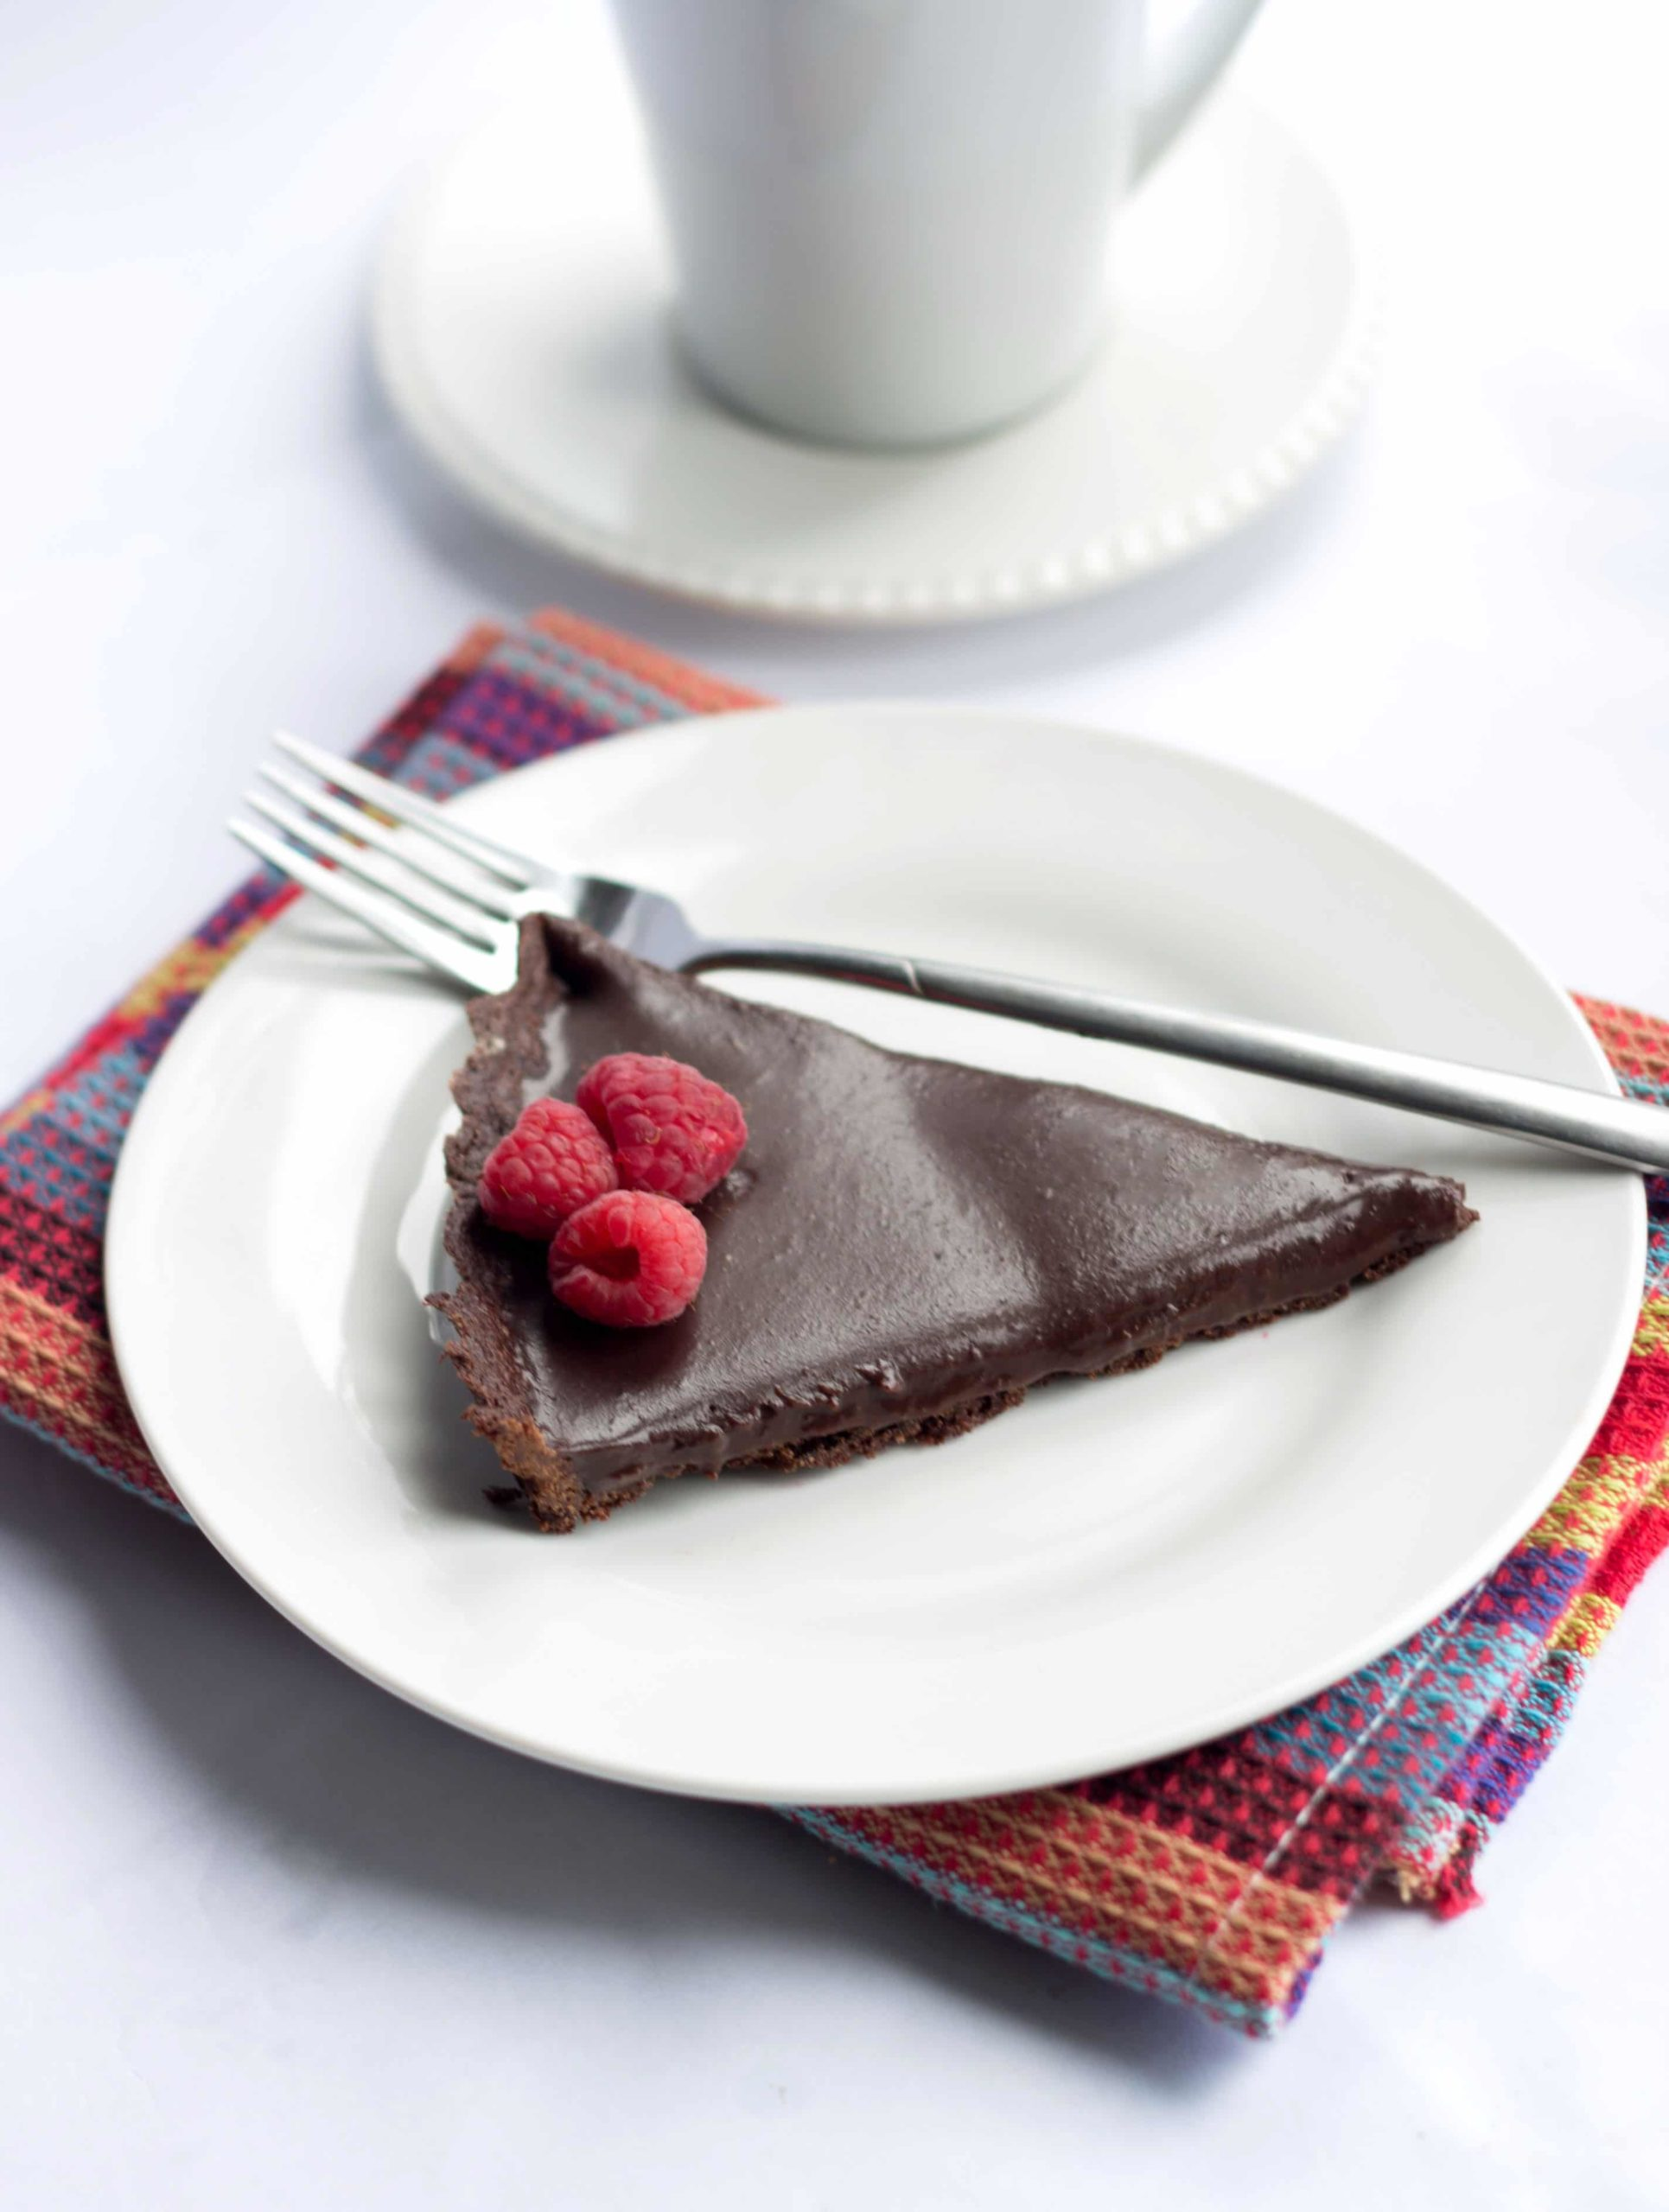 dark chocolate silk tart with three raspberries on a plate with a fork, cup and saucer in the background